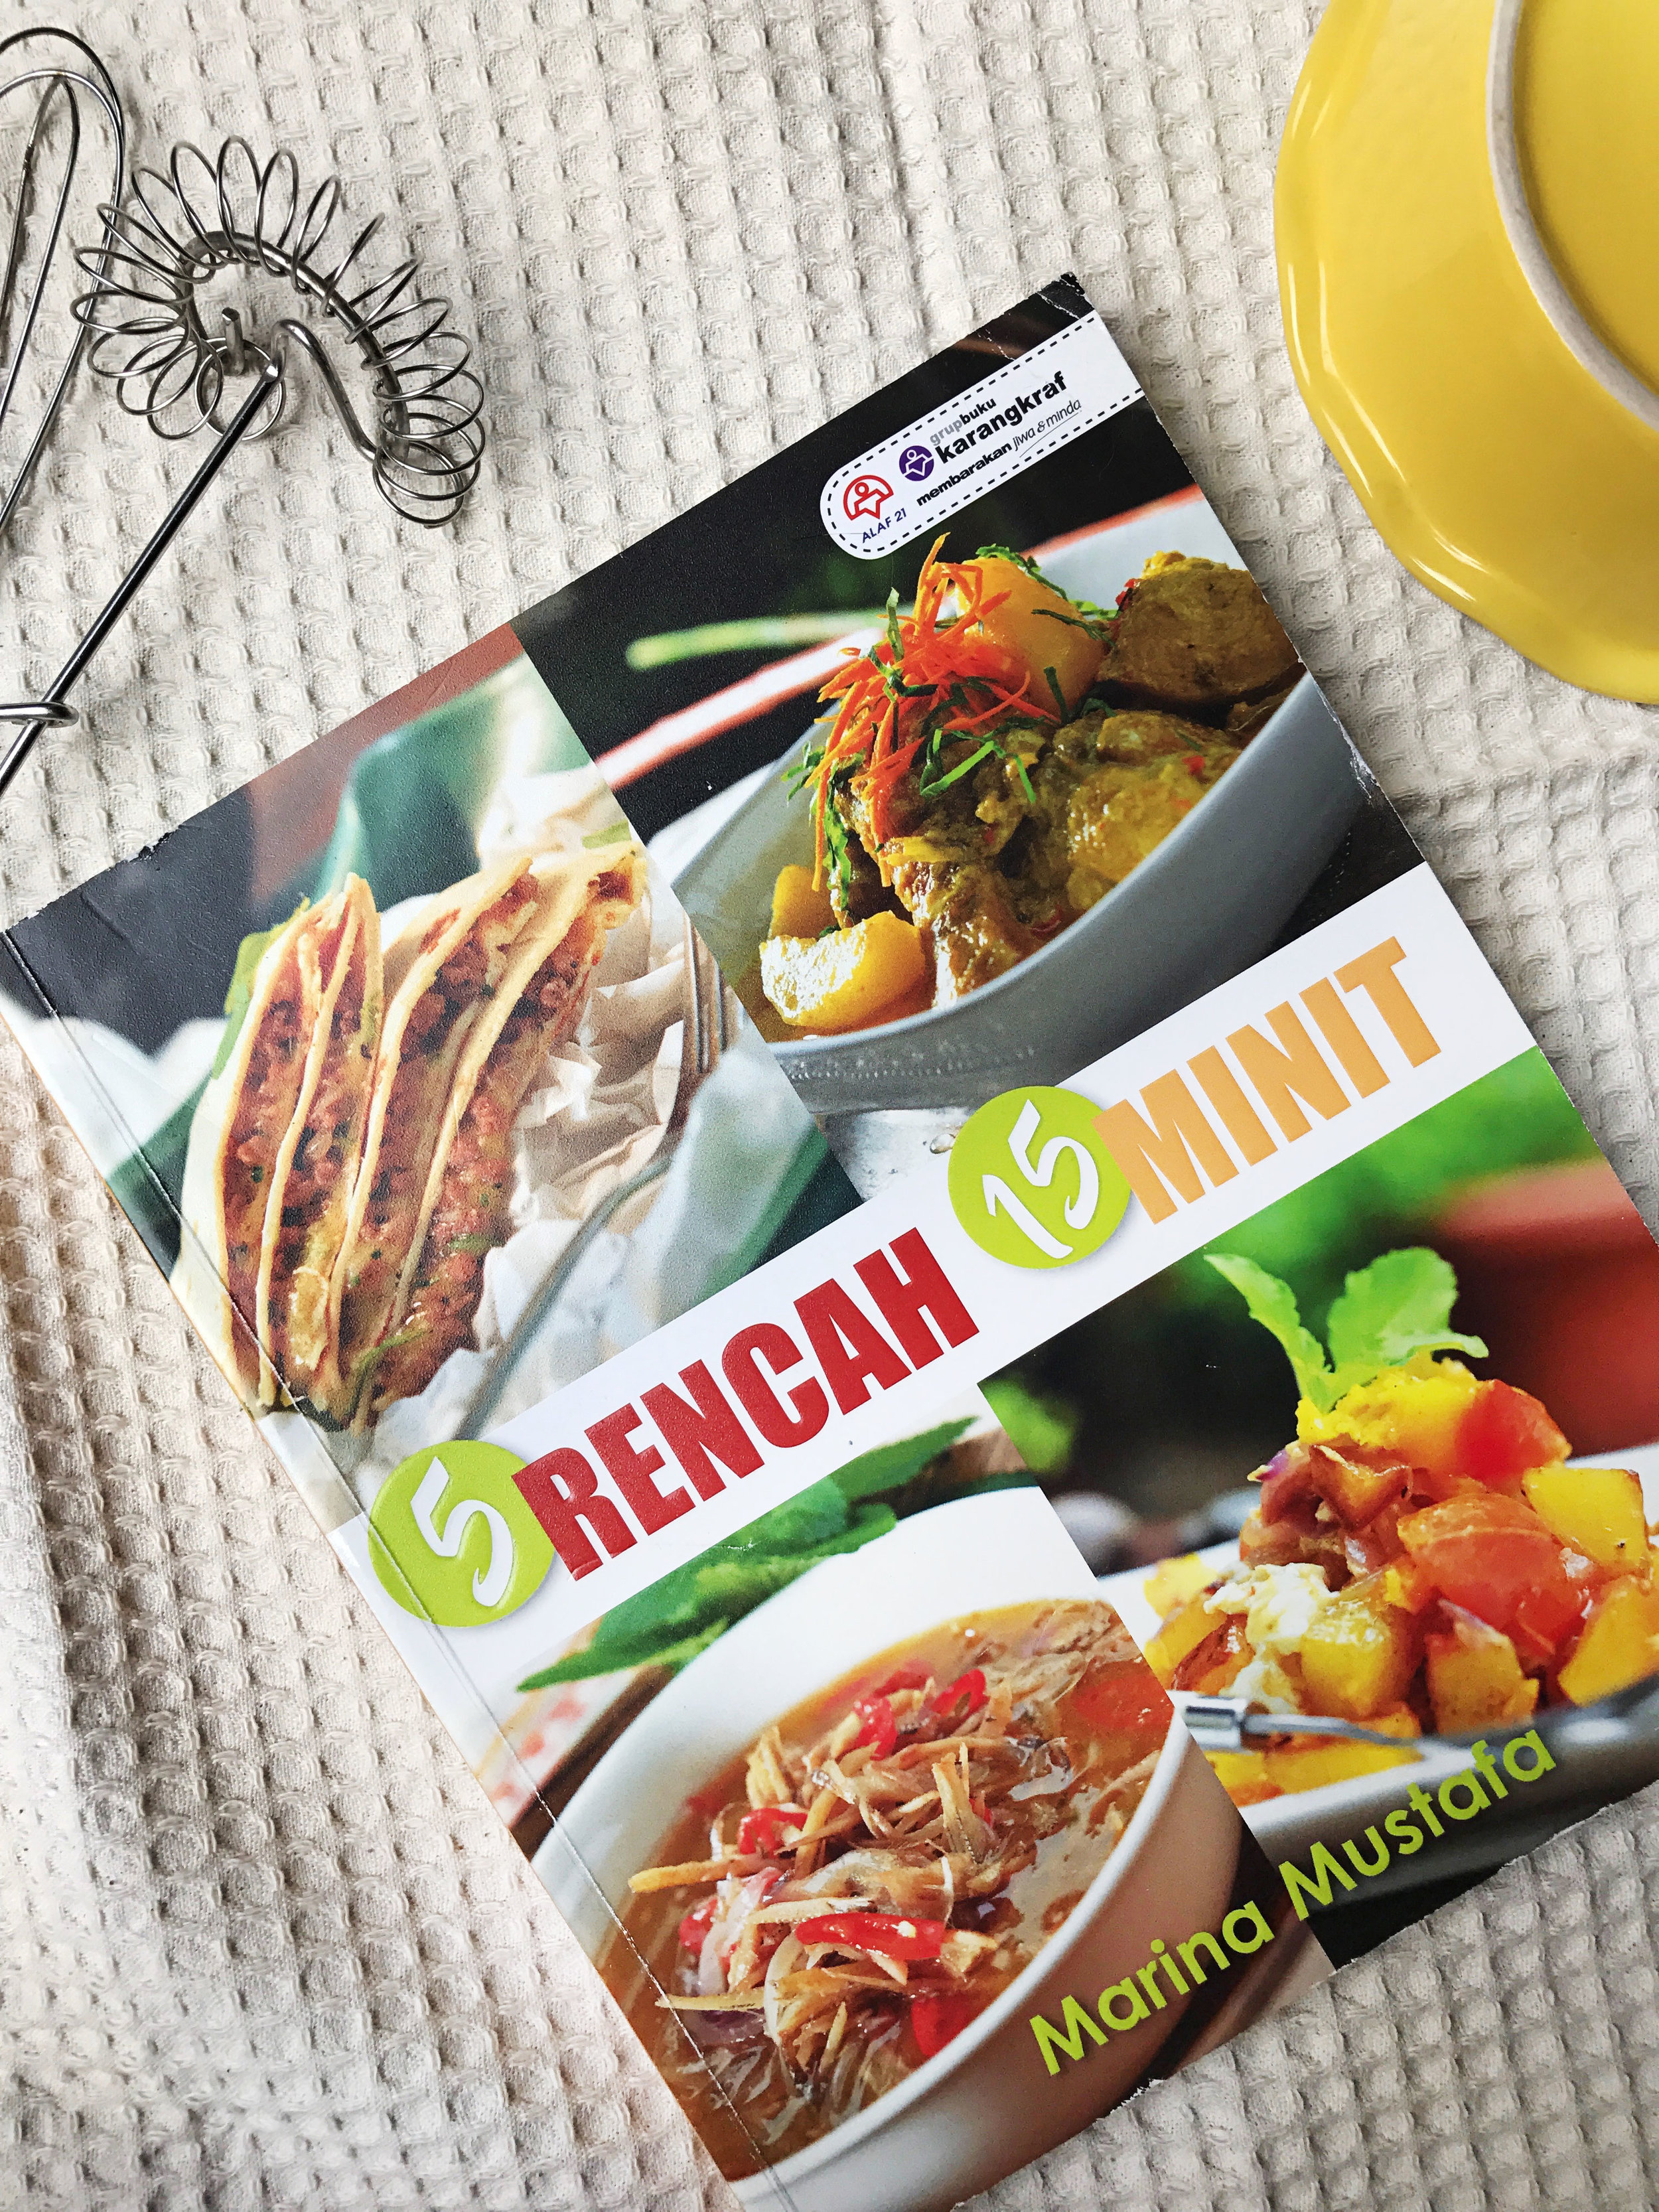 5 Rencah 15 Minit - Appropriate for today's lifestyle of limited time and limited space to store multiple ingredients, this cookbook has 100 recipes using only 5 basic ingredients and can be cooked in 15 minutes. Perfect for working mums & dads, students, the elderly and everyone who is always rushing for time!